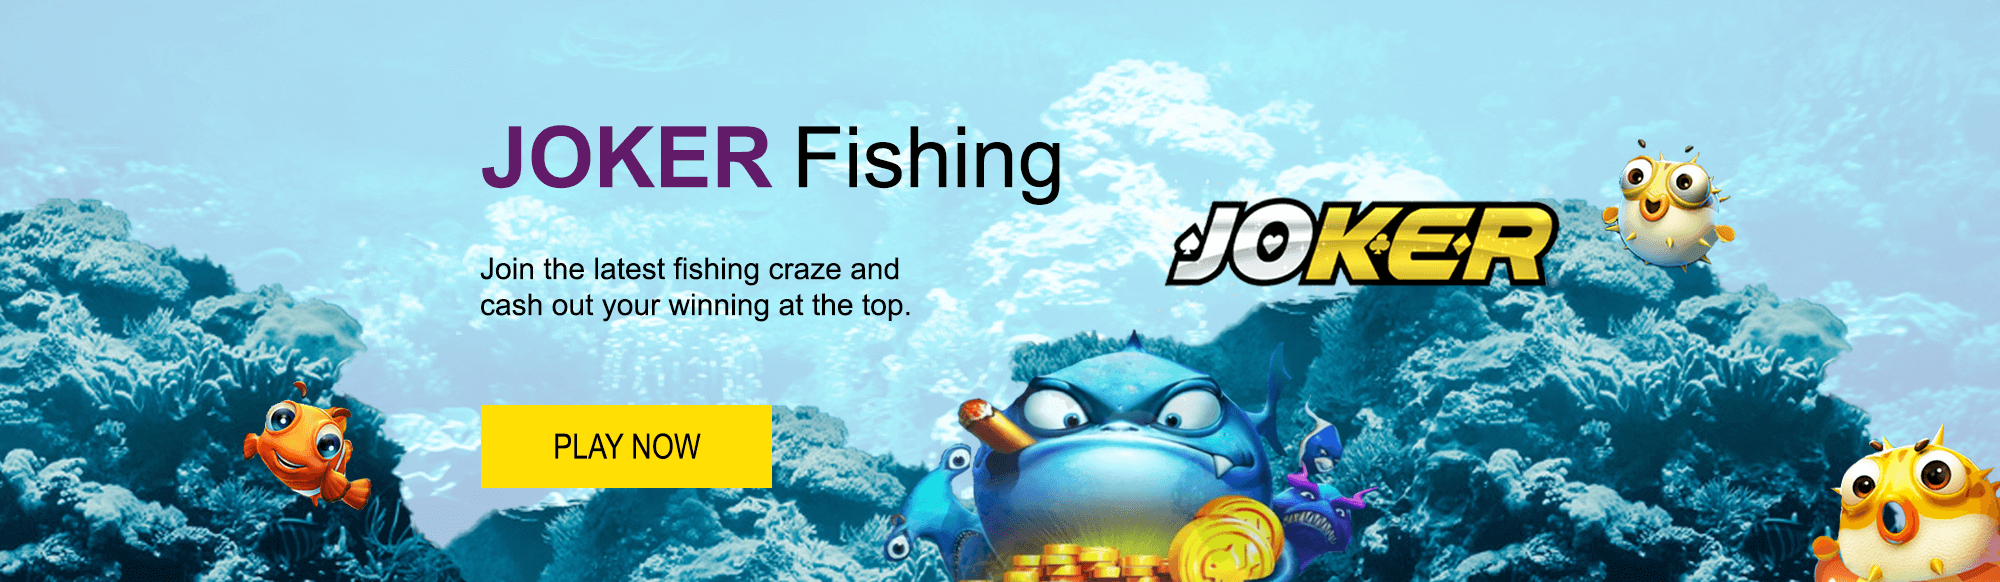 Joker123 fishing game